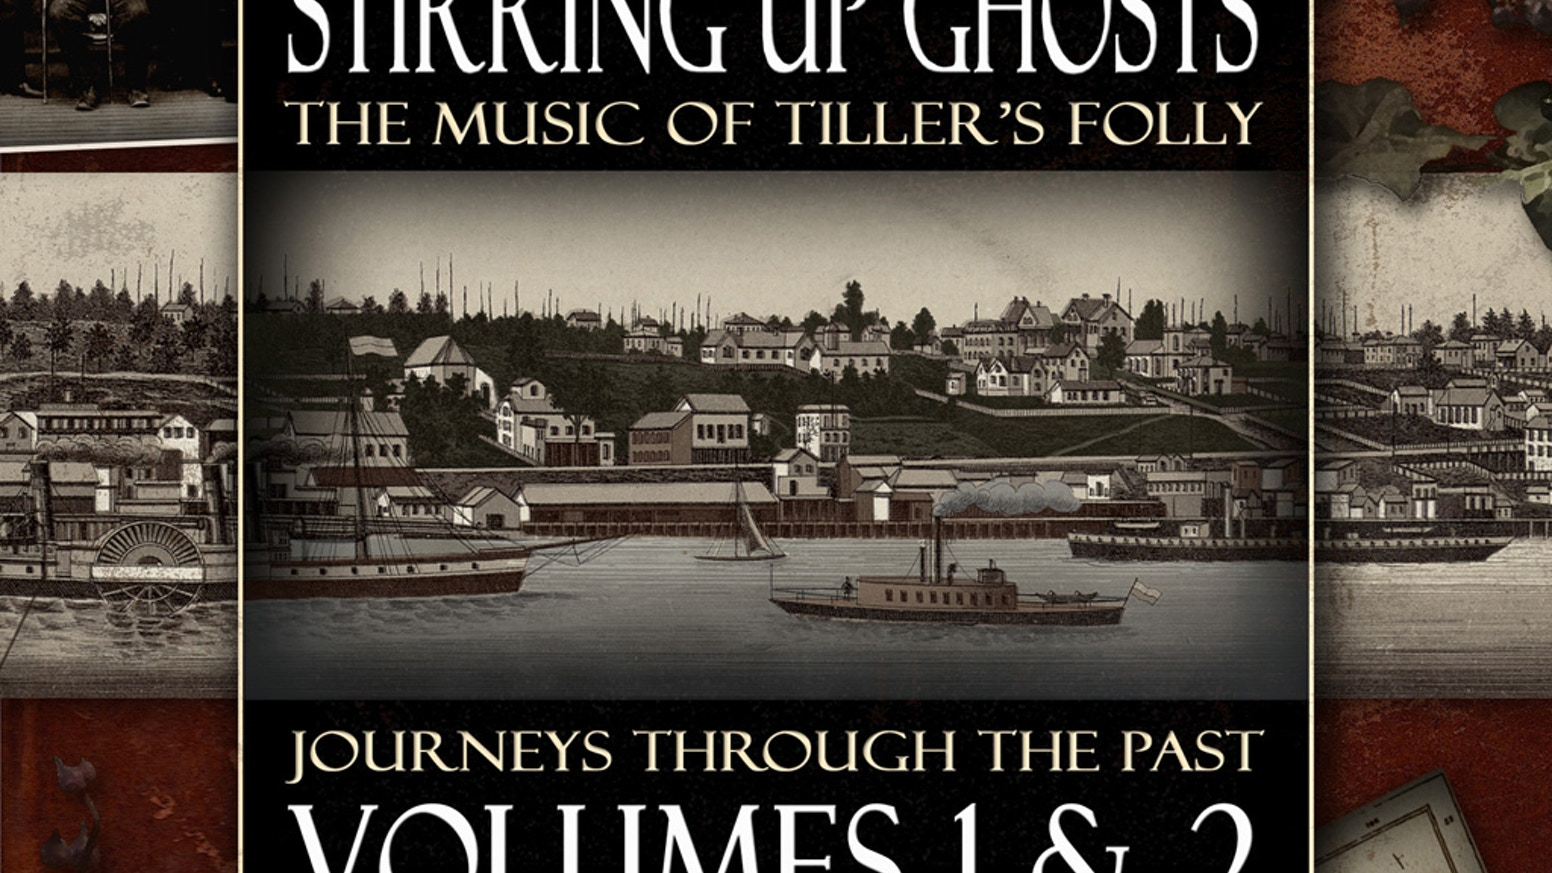 STIRRING UP GHOSTS - VOLUMES 1 & 2 by Tiller's Folly